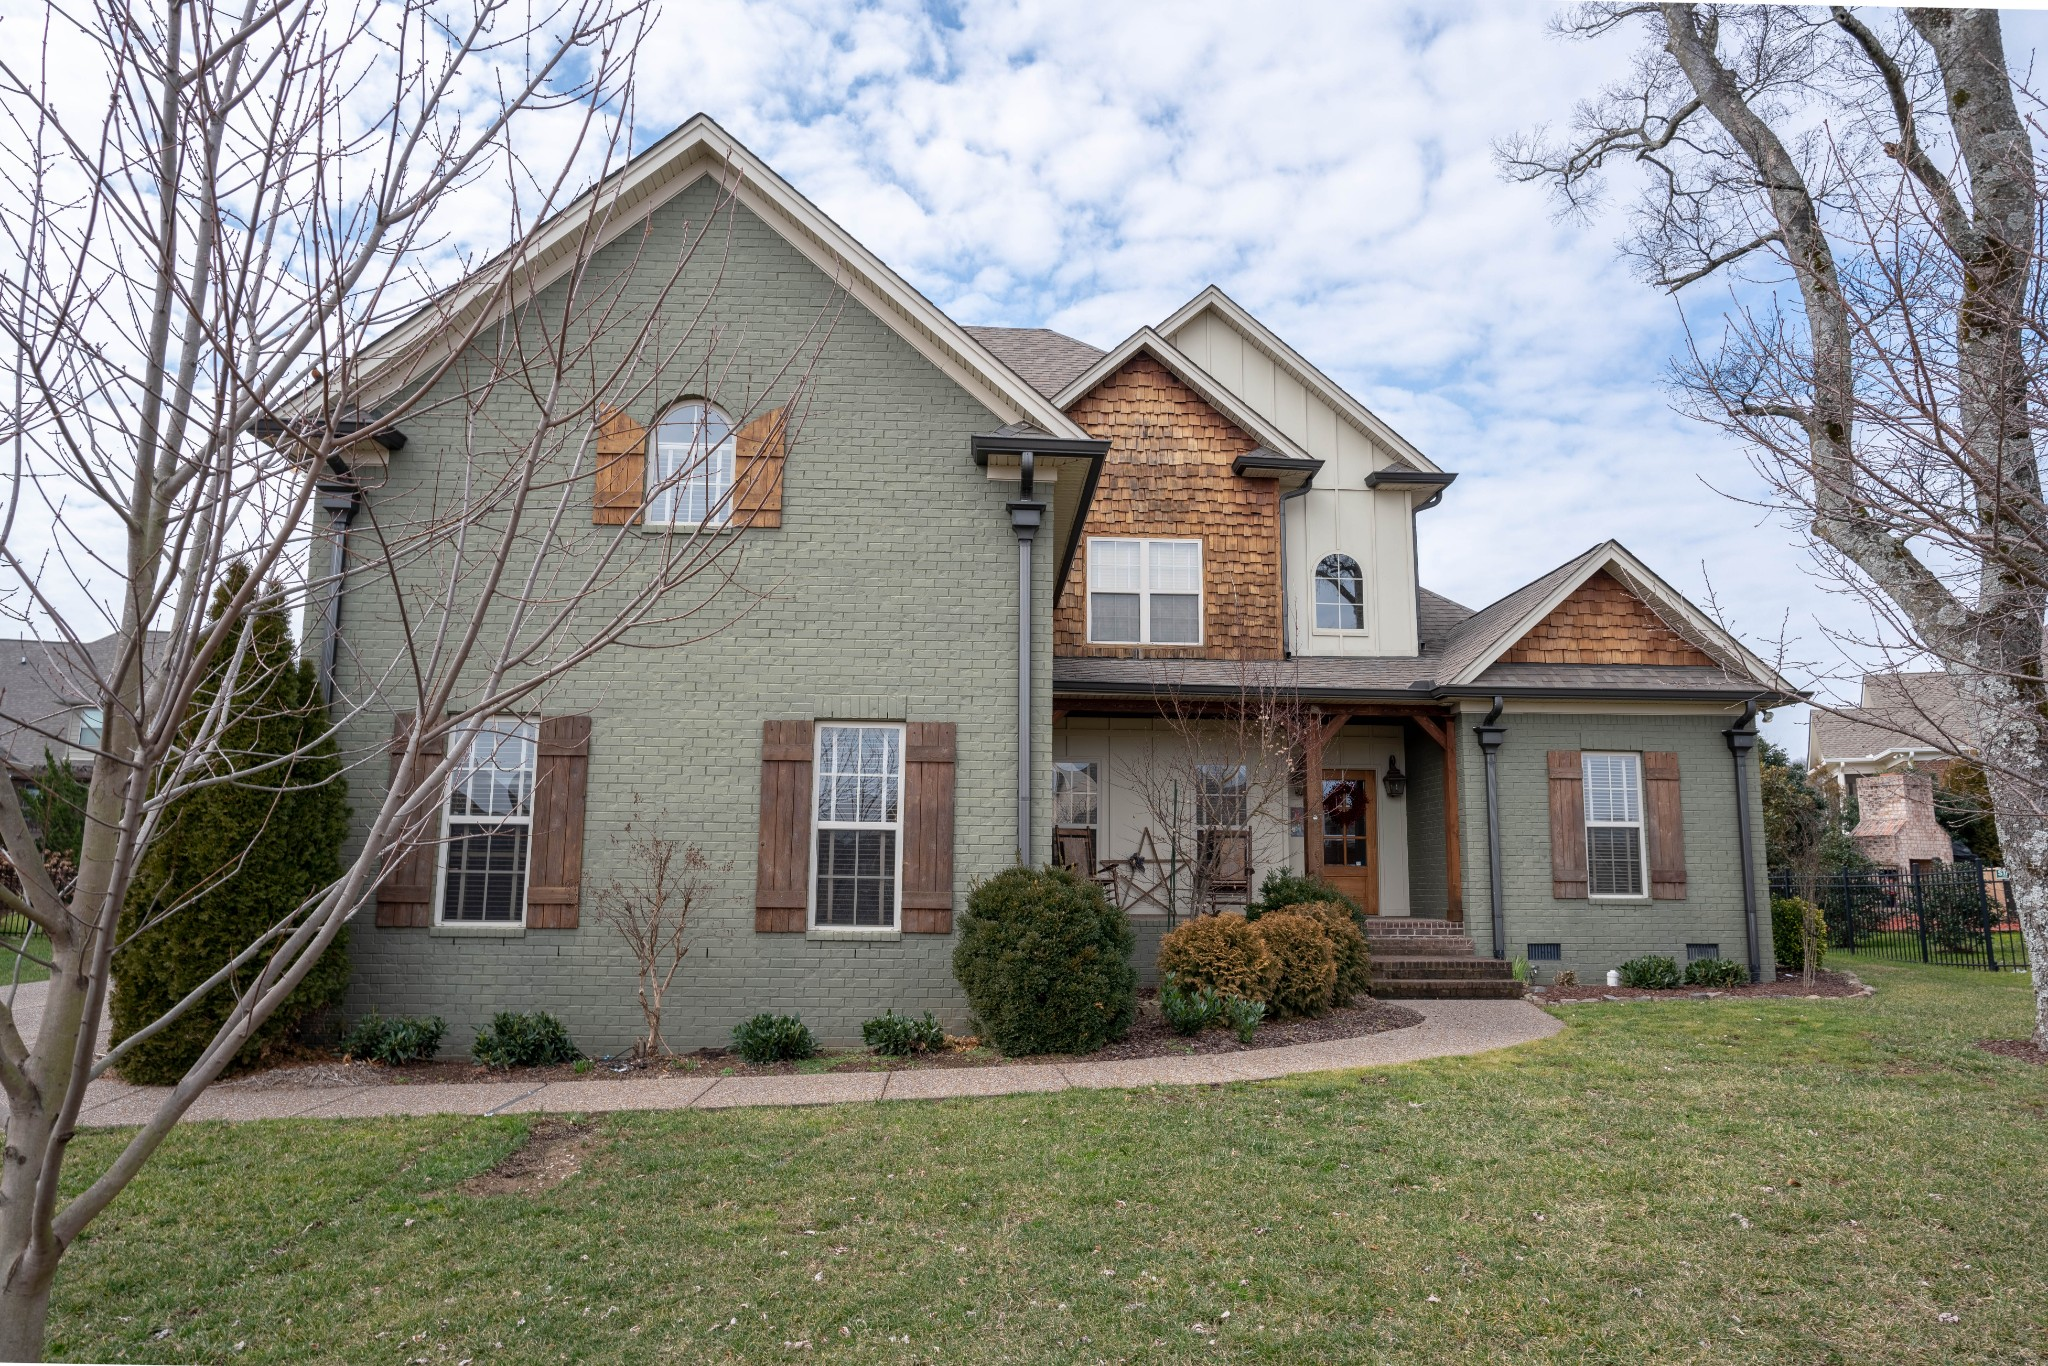 6002 Trout Ln Property Photo - Spring Hill, TN real estate listing